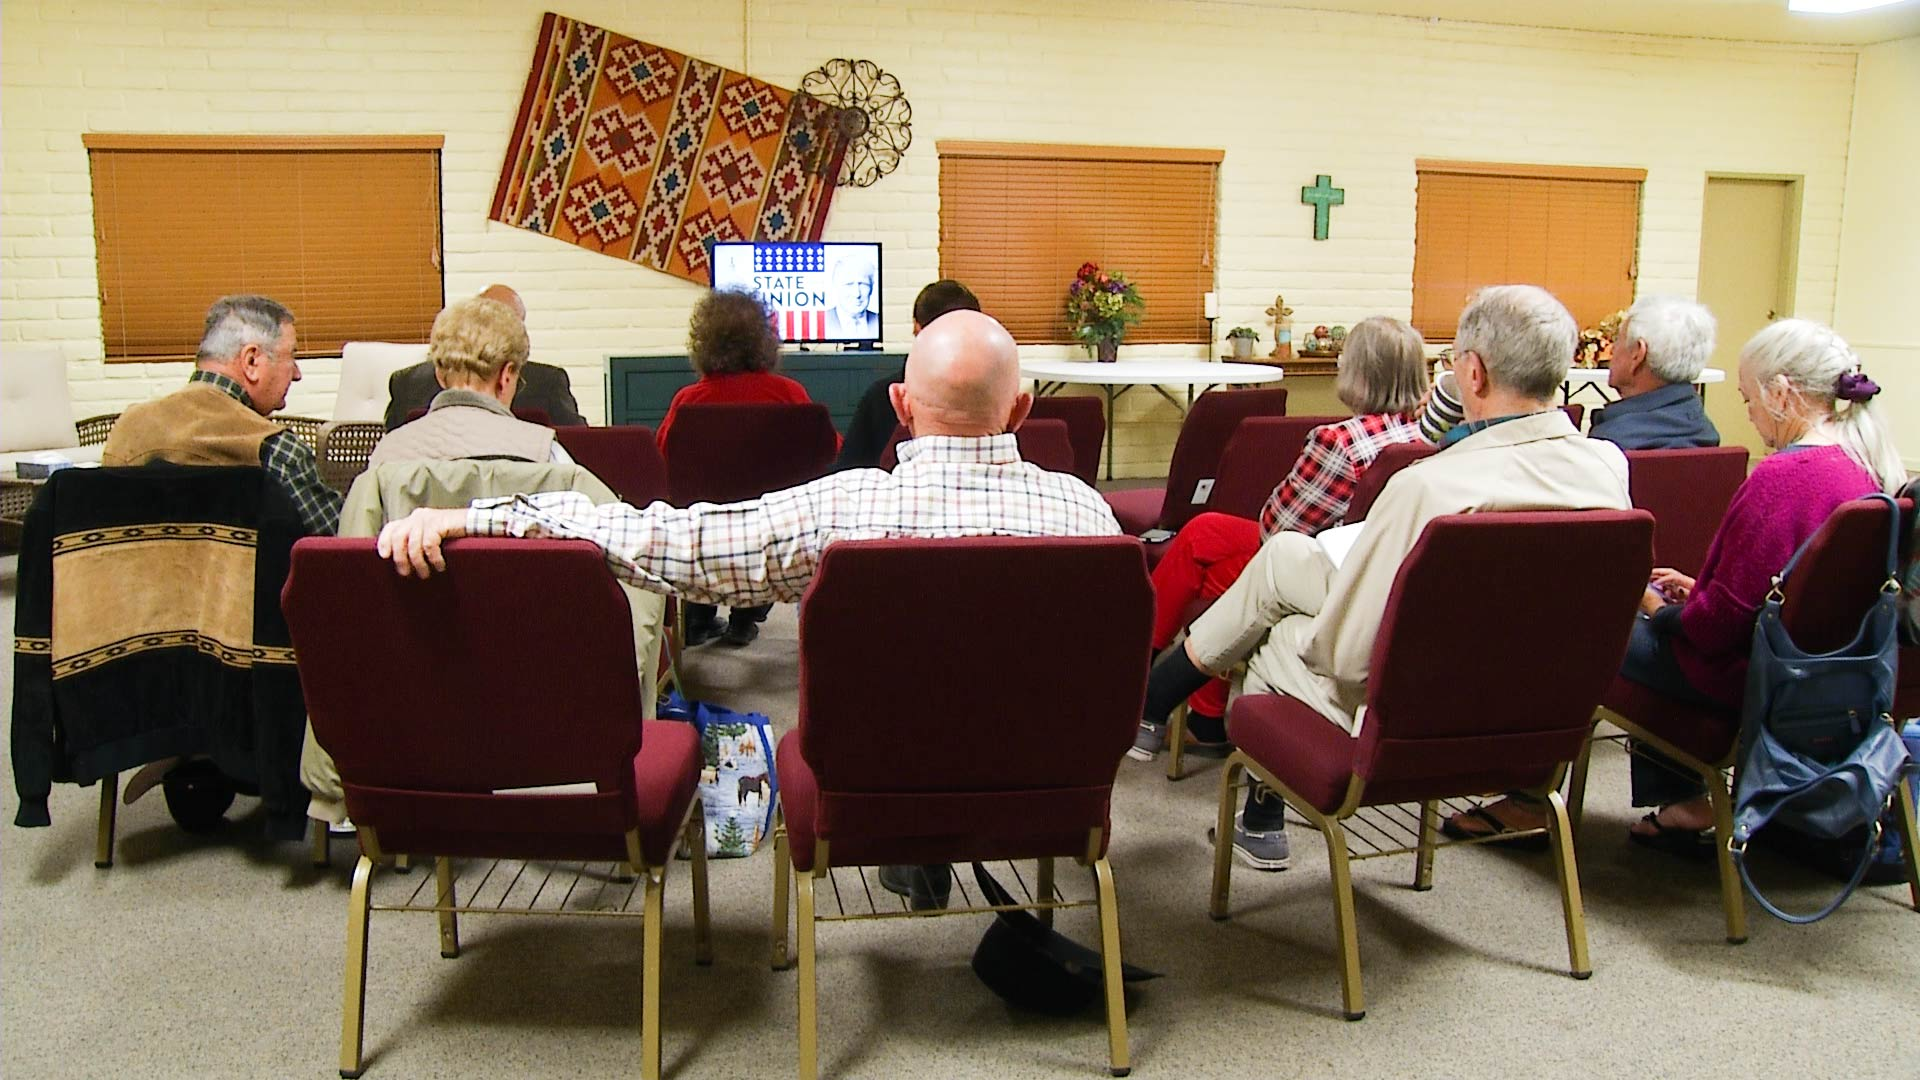 Southern Arizona residents watch the 2018 State of the Union address.